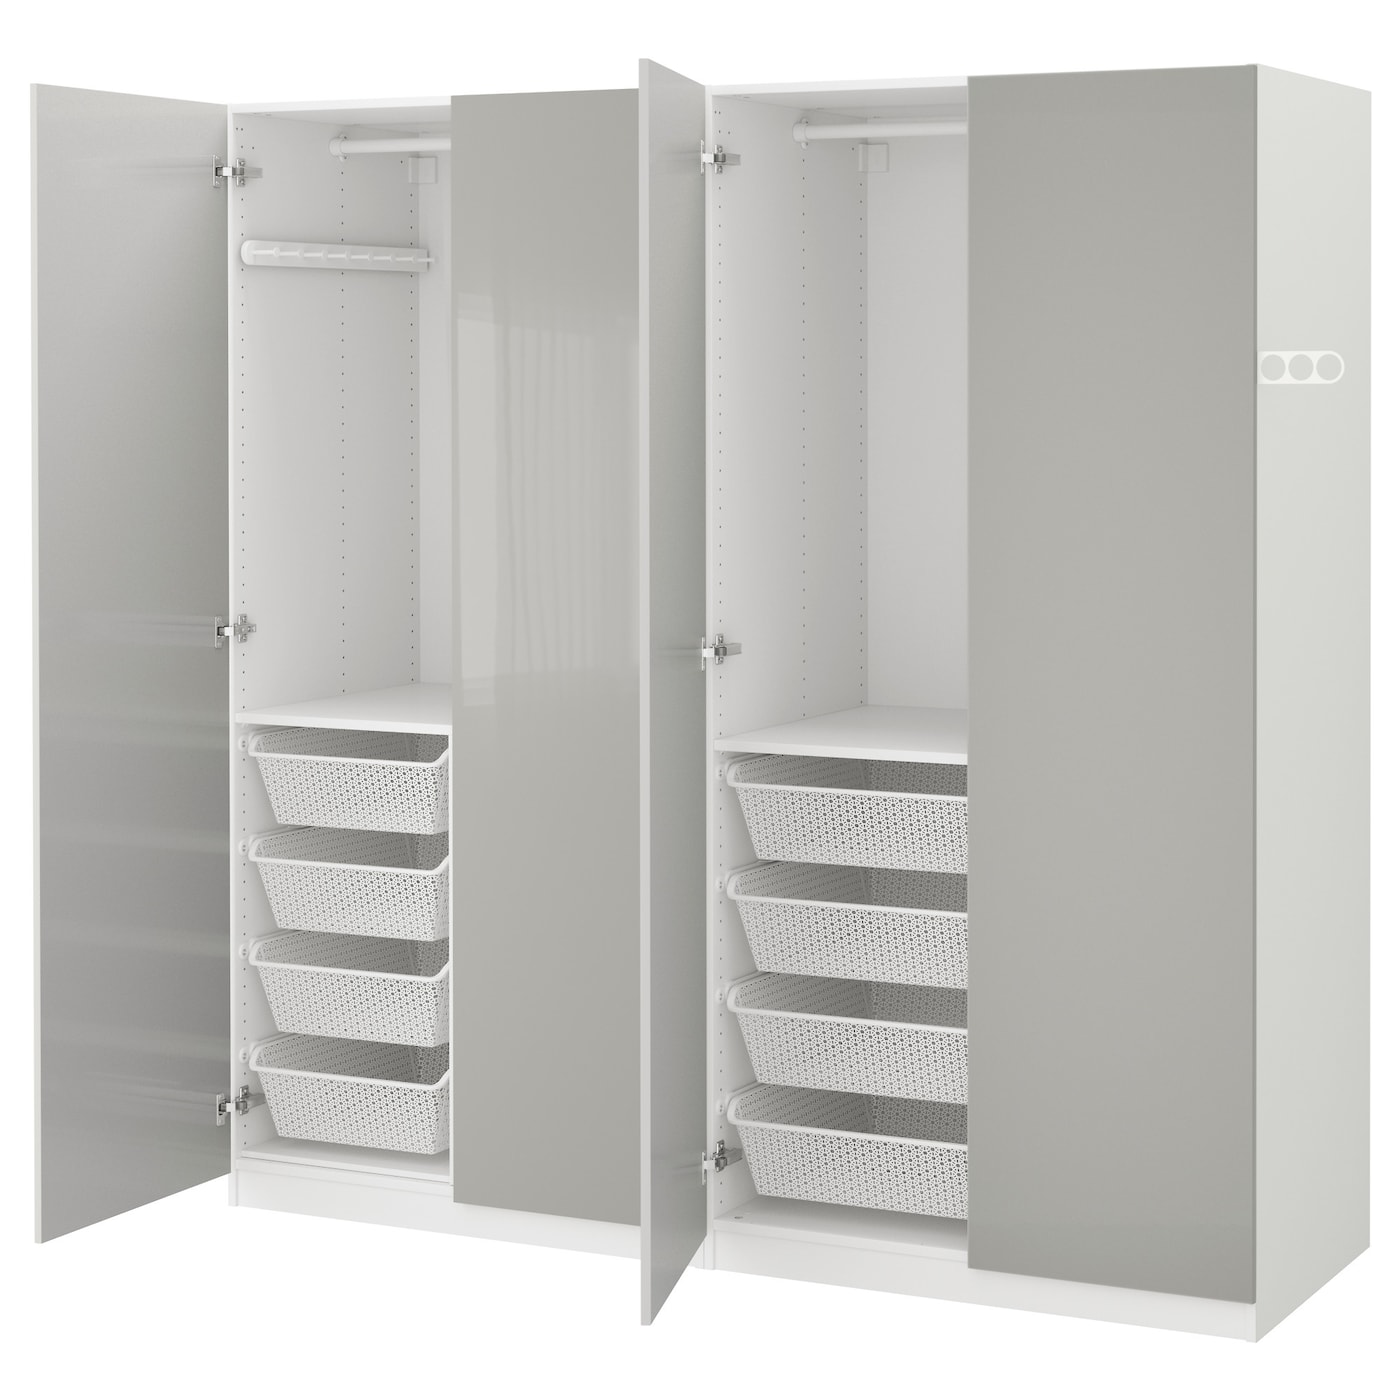 pax wardrobe white fardal high gloss light grey 200x60x201. Black Bedroom Furniture Sets. Home Design Ideas